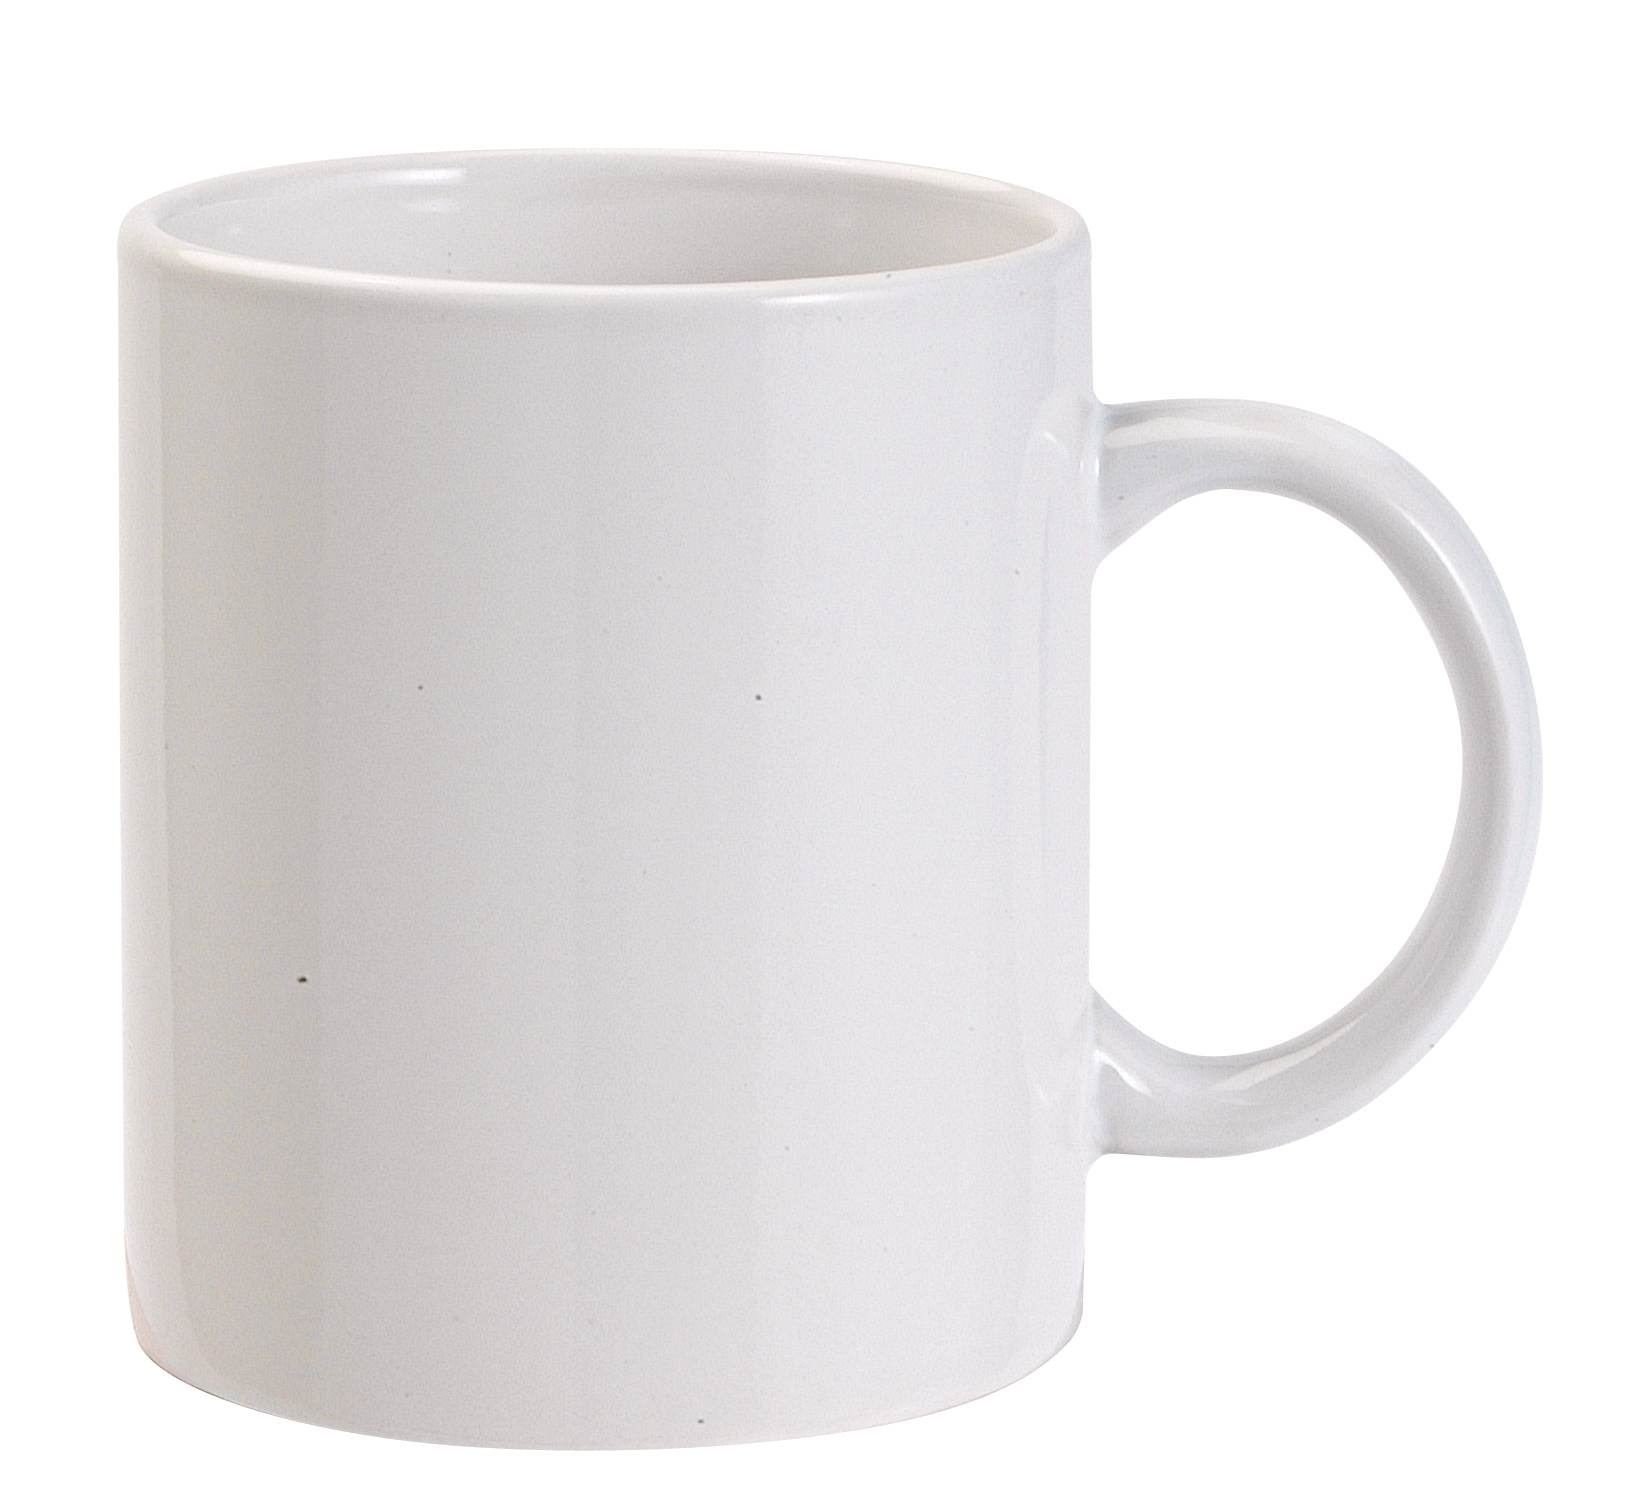 Cup HD PNG - 143650